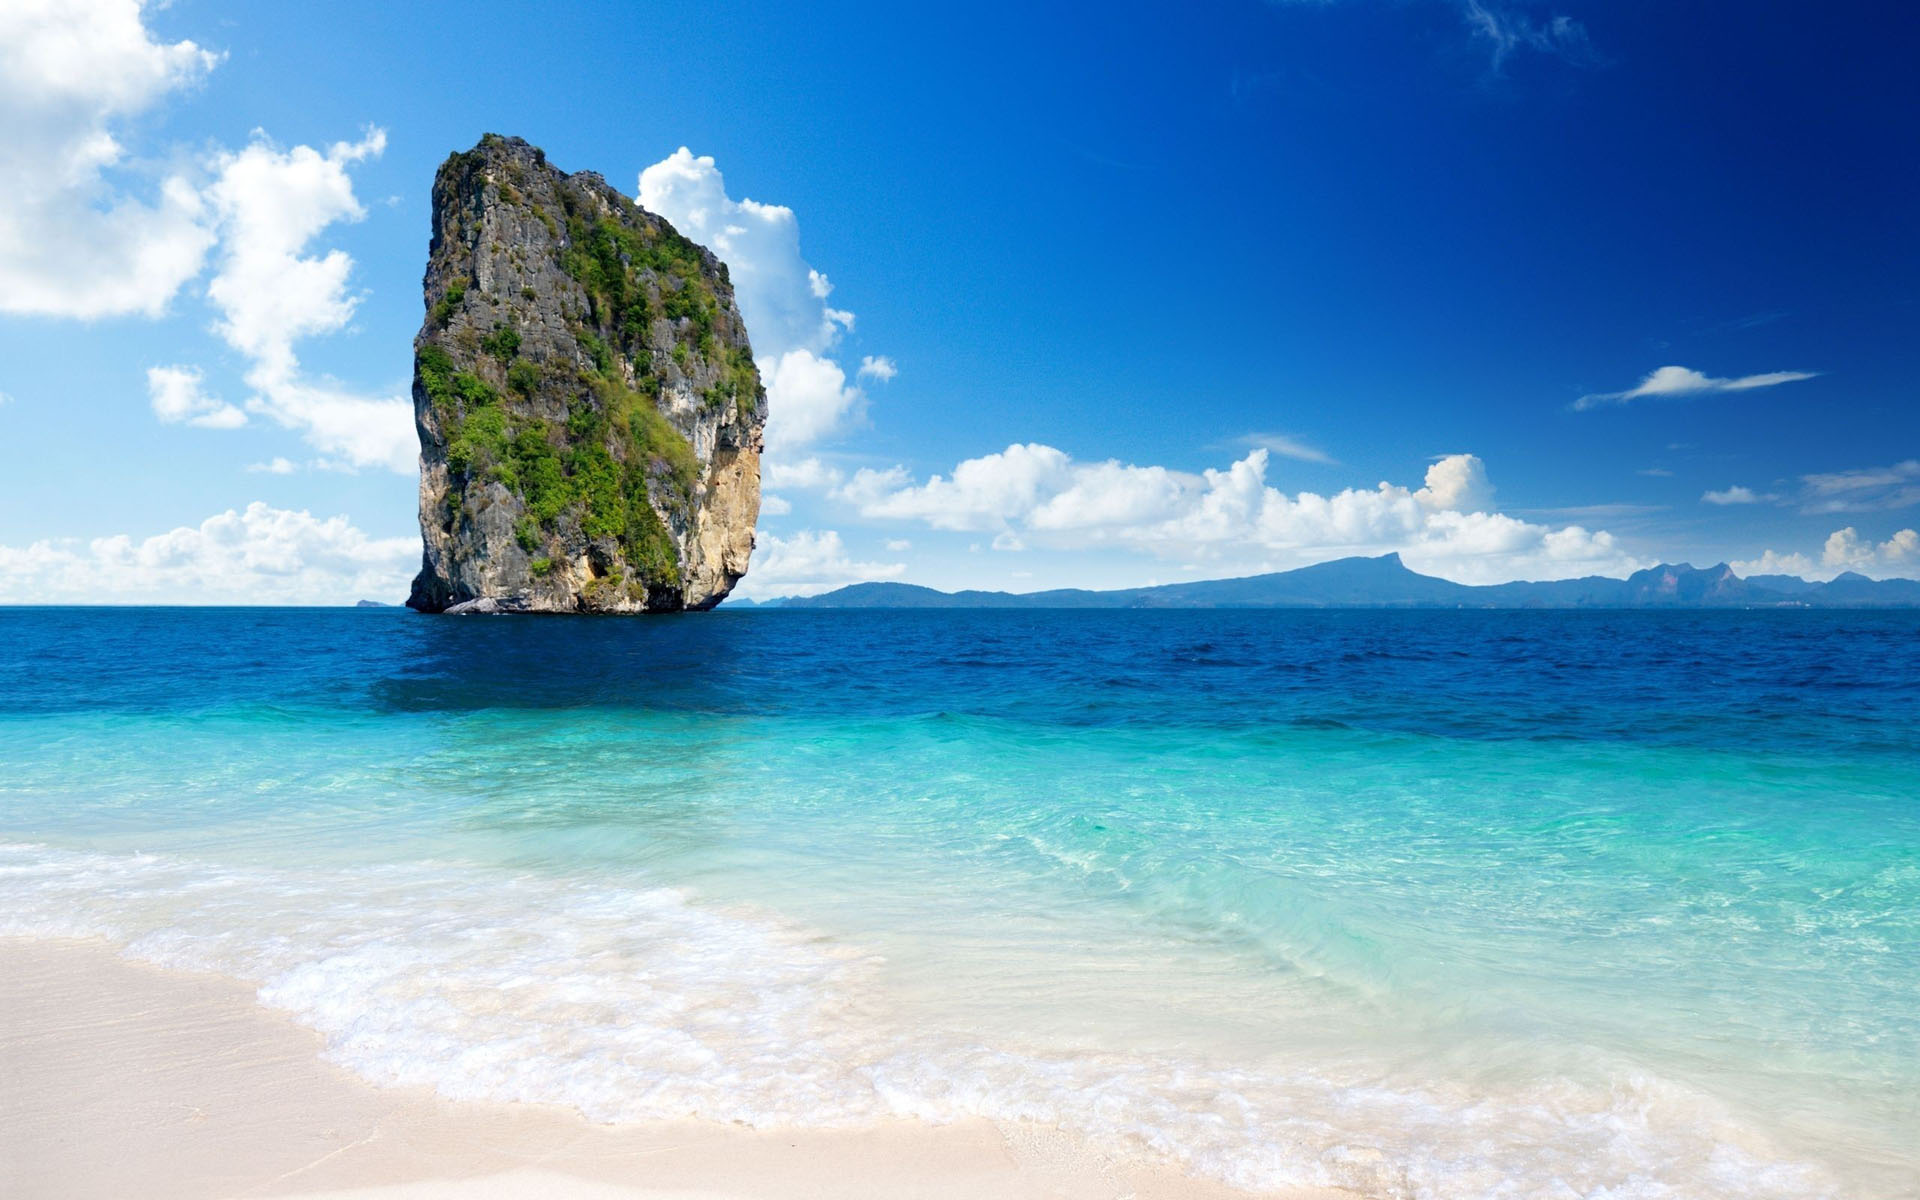 Krabi Islands Travel